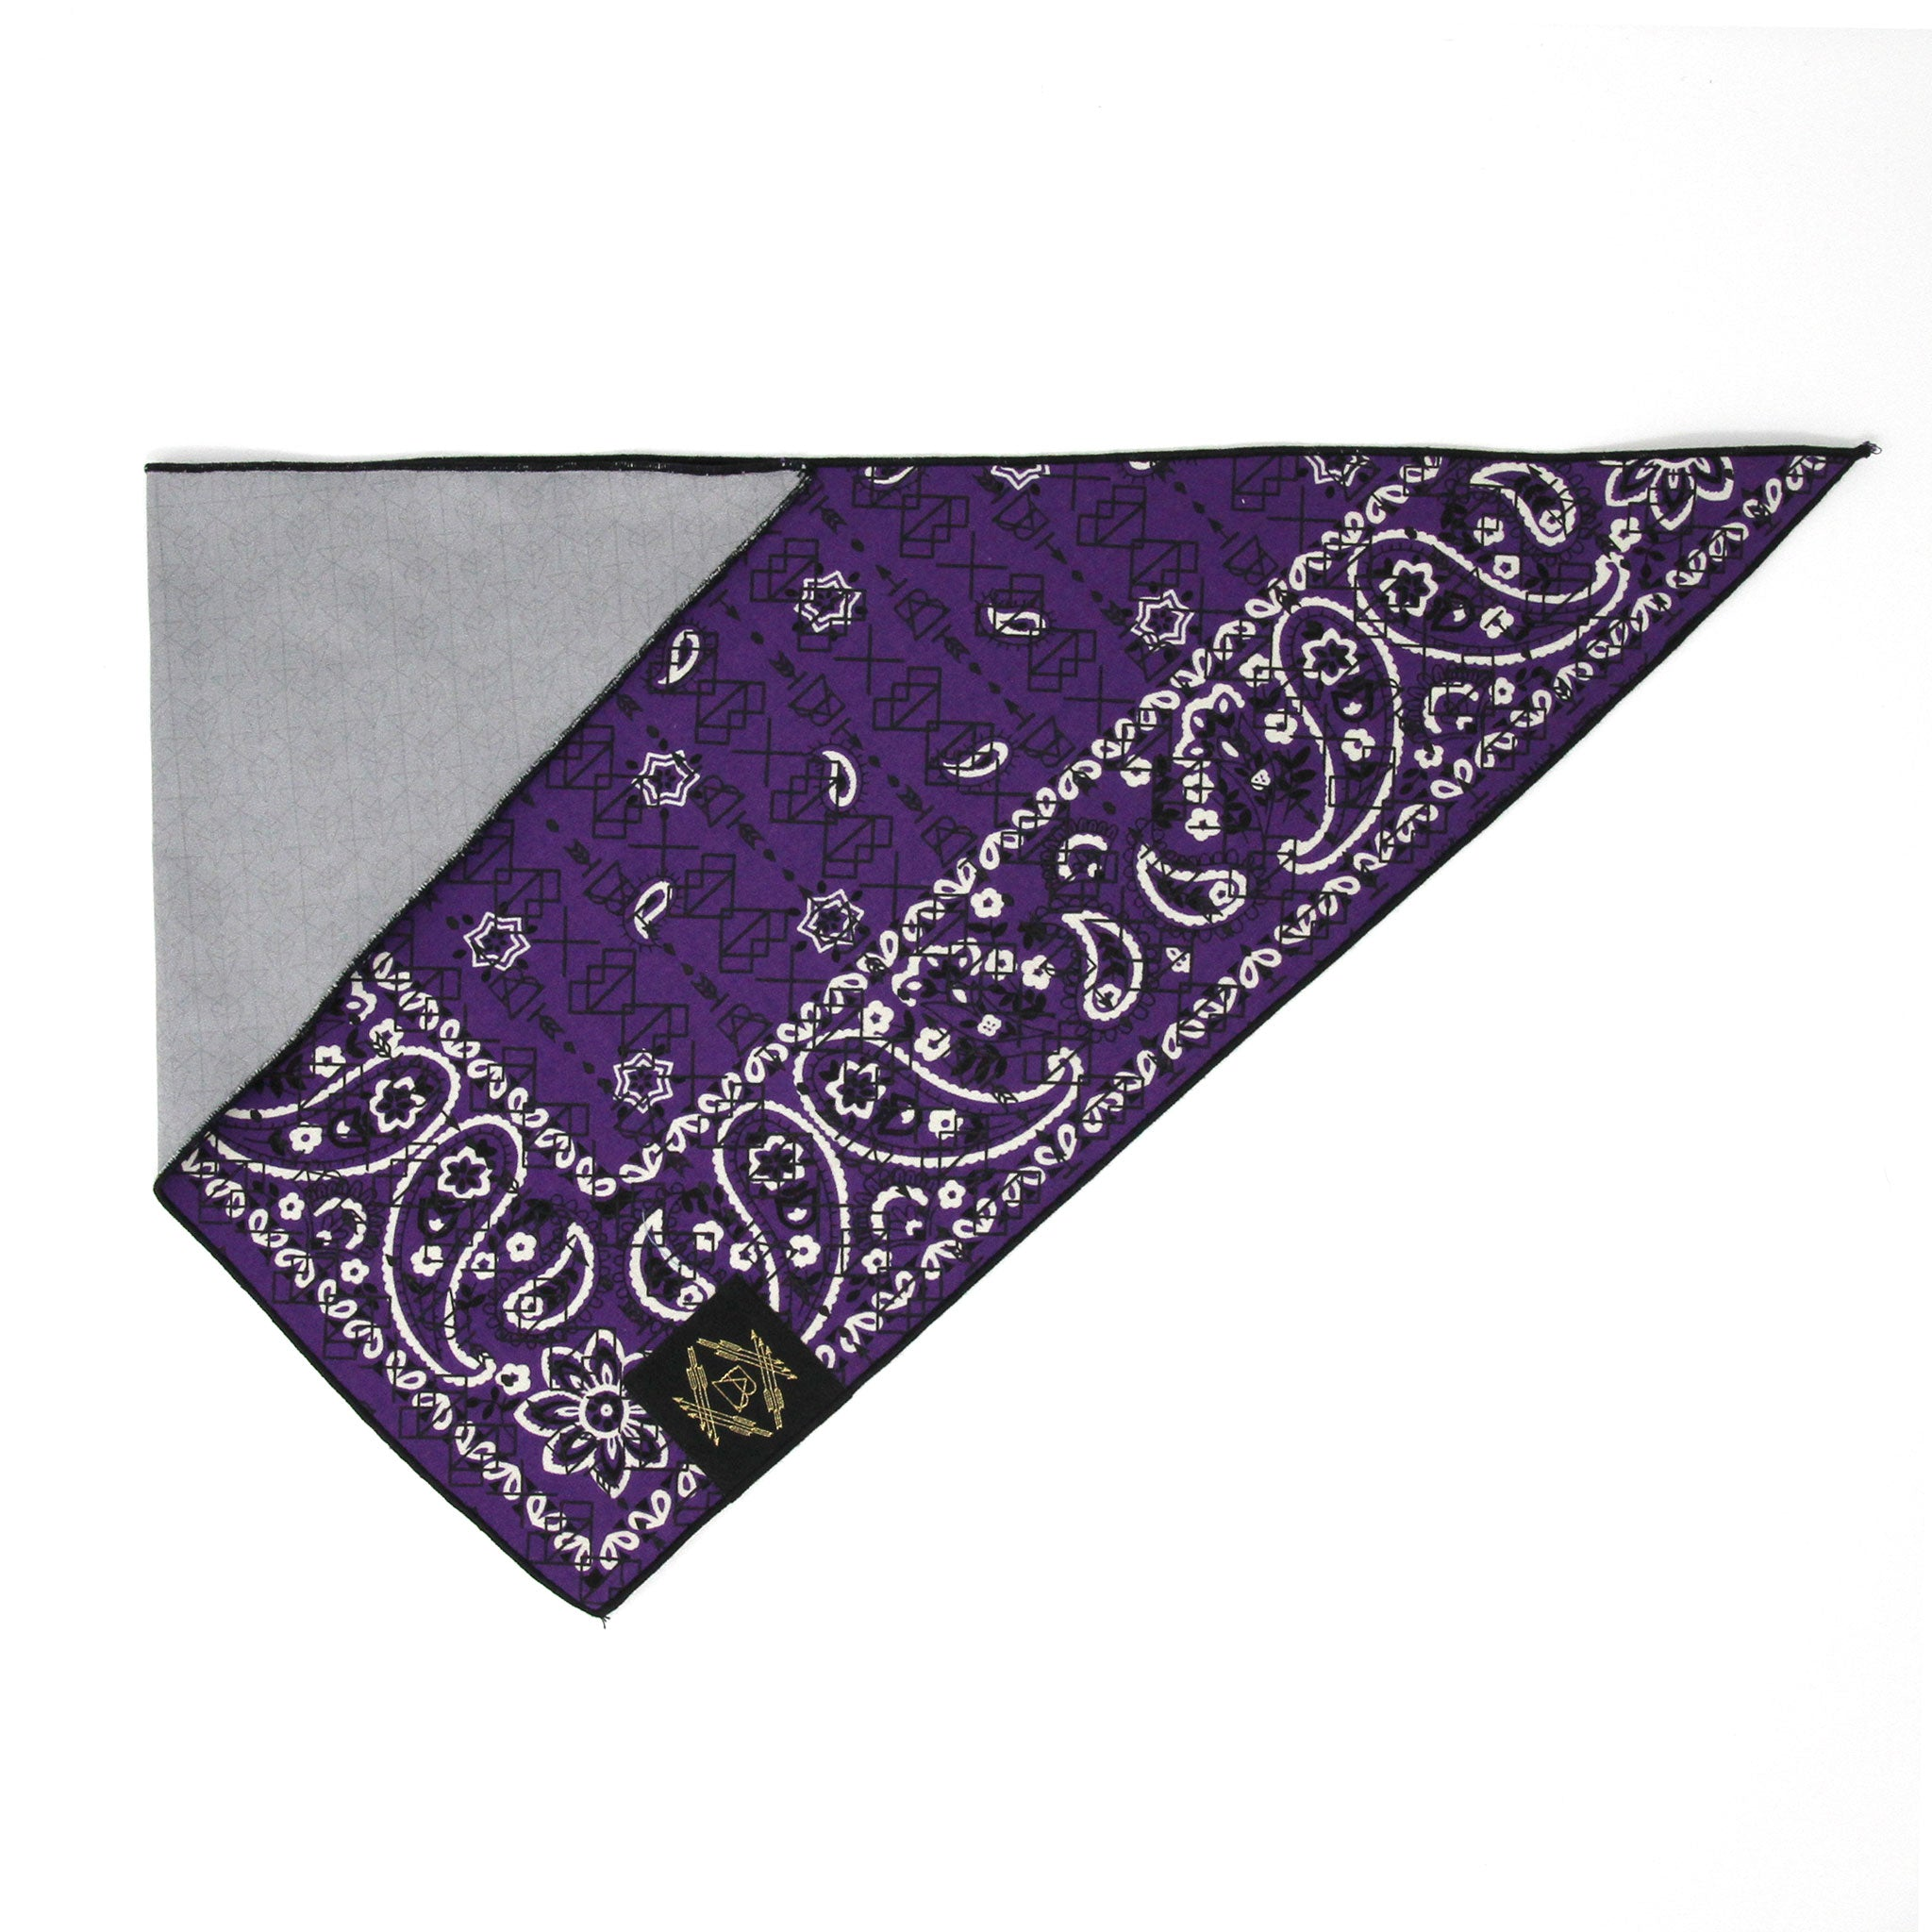 Dark Purple Vintage Dog Bandana With Black Screen Printing